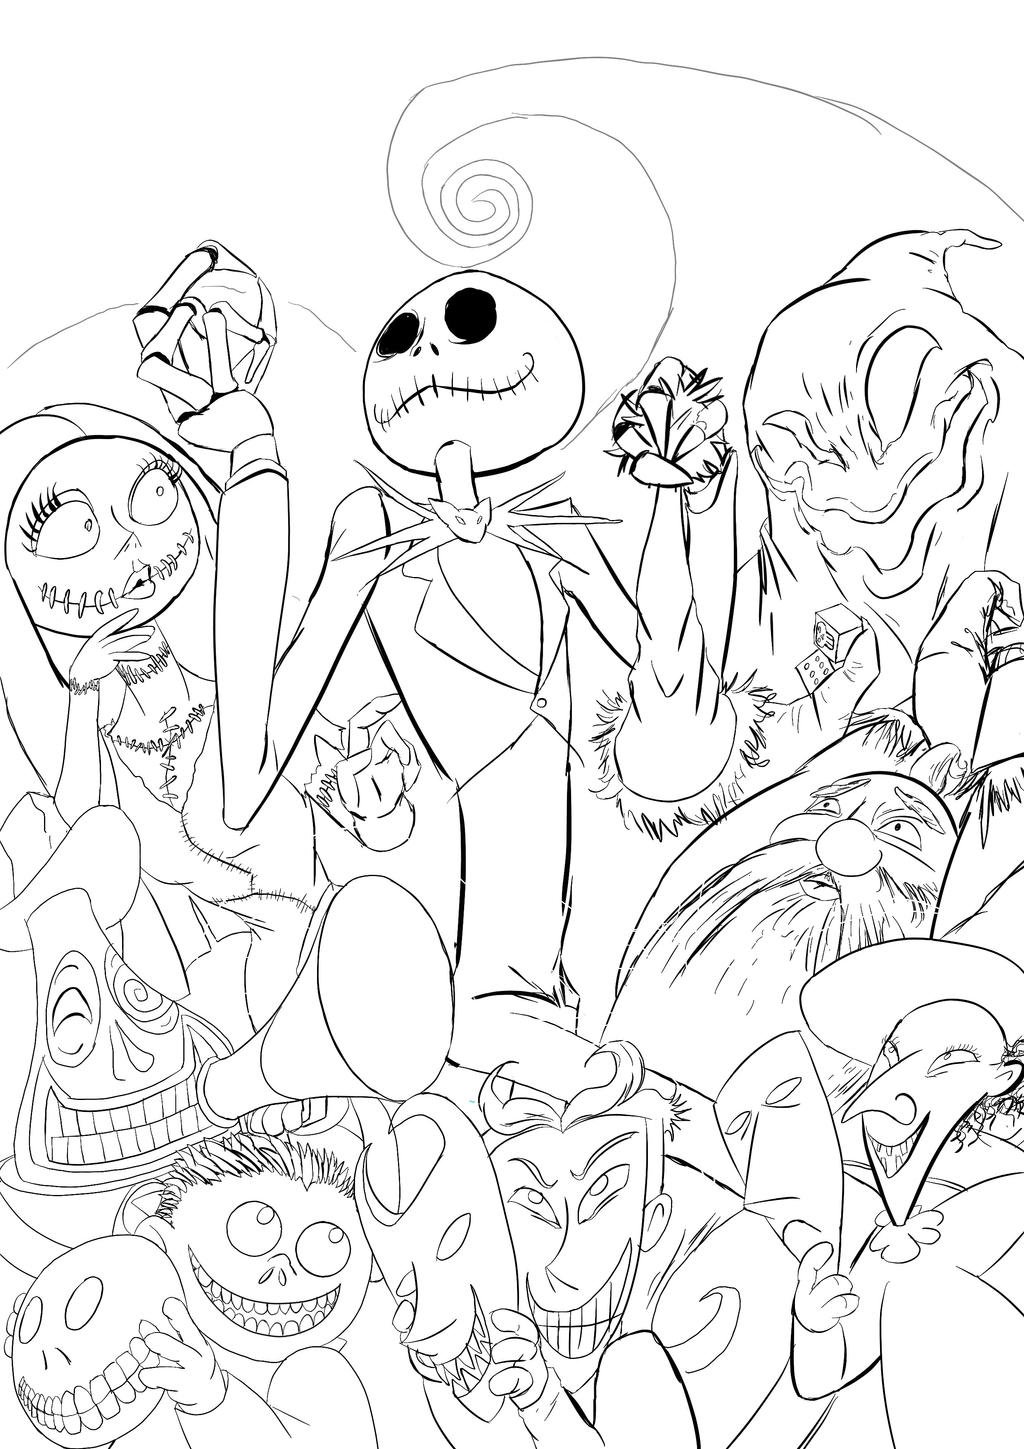 Nightmare before Xmas line art by SemajZ on DeviantArt